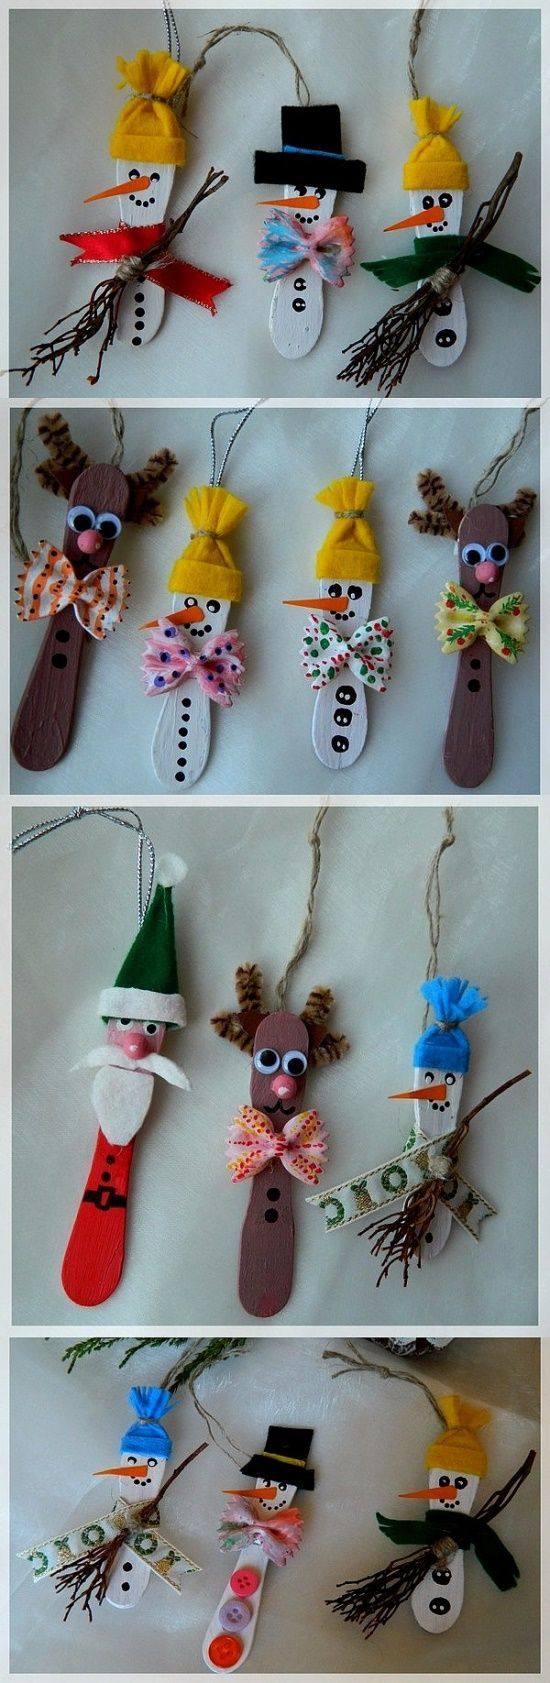 pinterest popsickle stick ornaments | Wooden Stick Crafts / Make quick and easy…